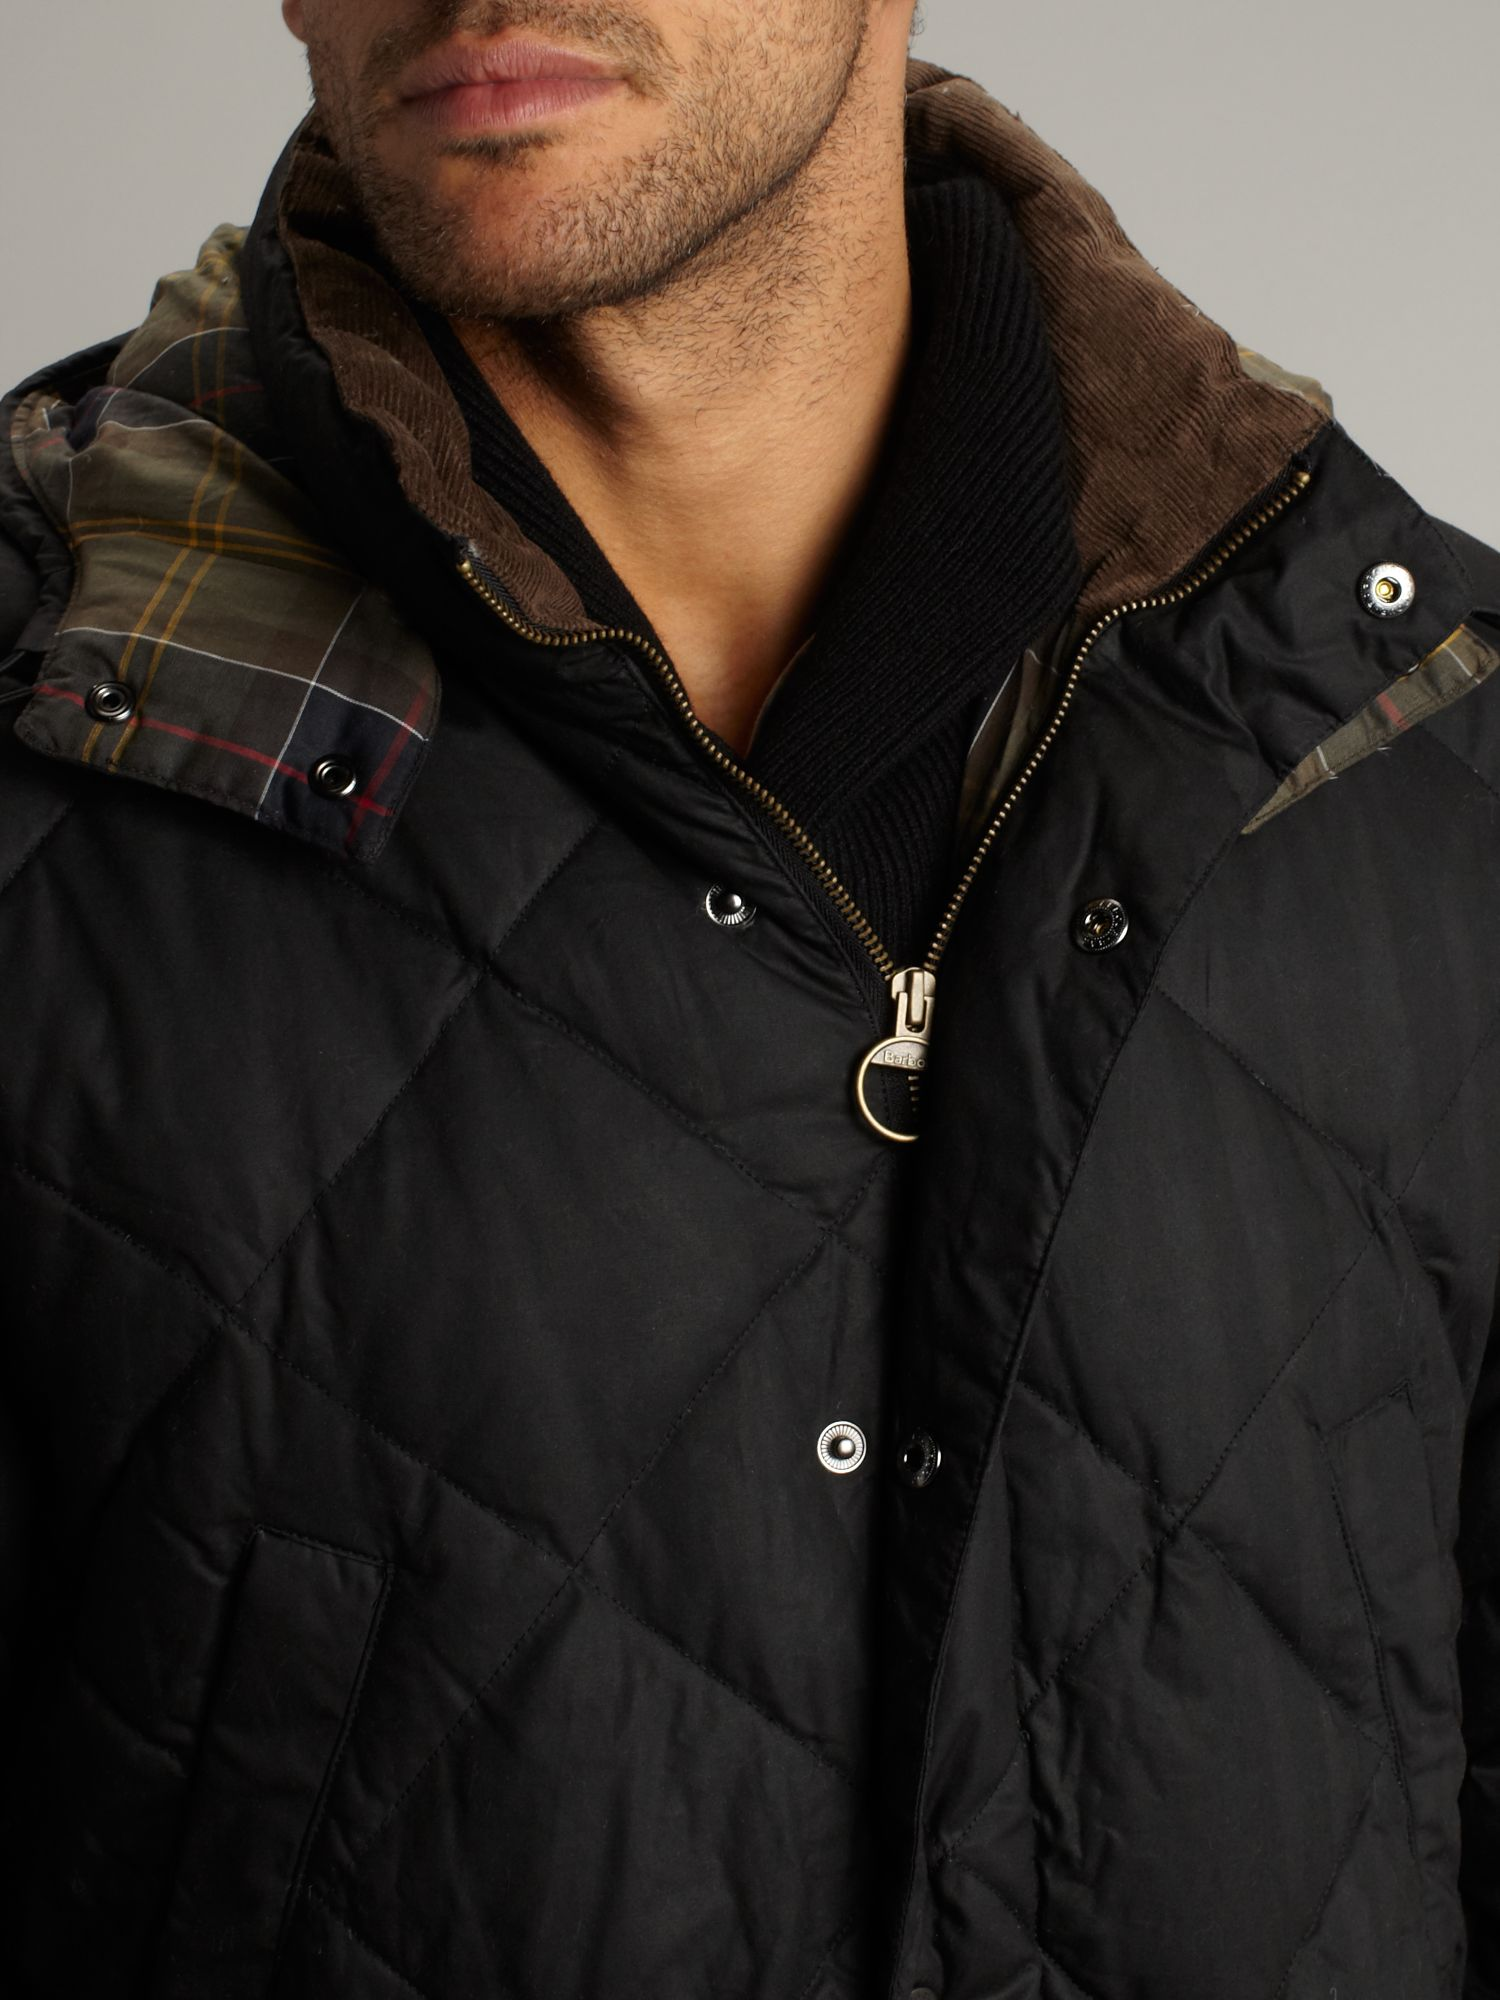 Lyst - Barbour Down Wax Quilted Jacket in Black for Men : barbour quilted waxed jacket - Adamdwight.com